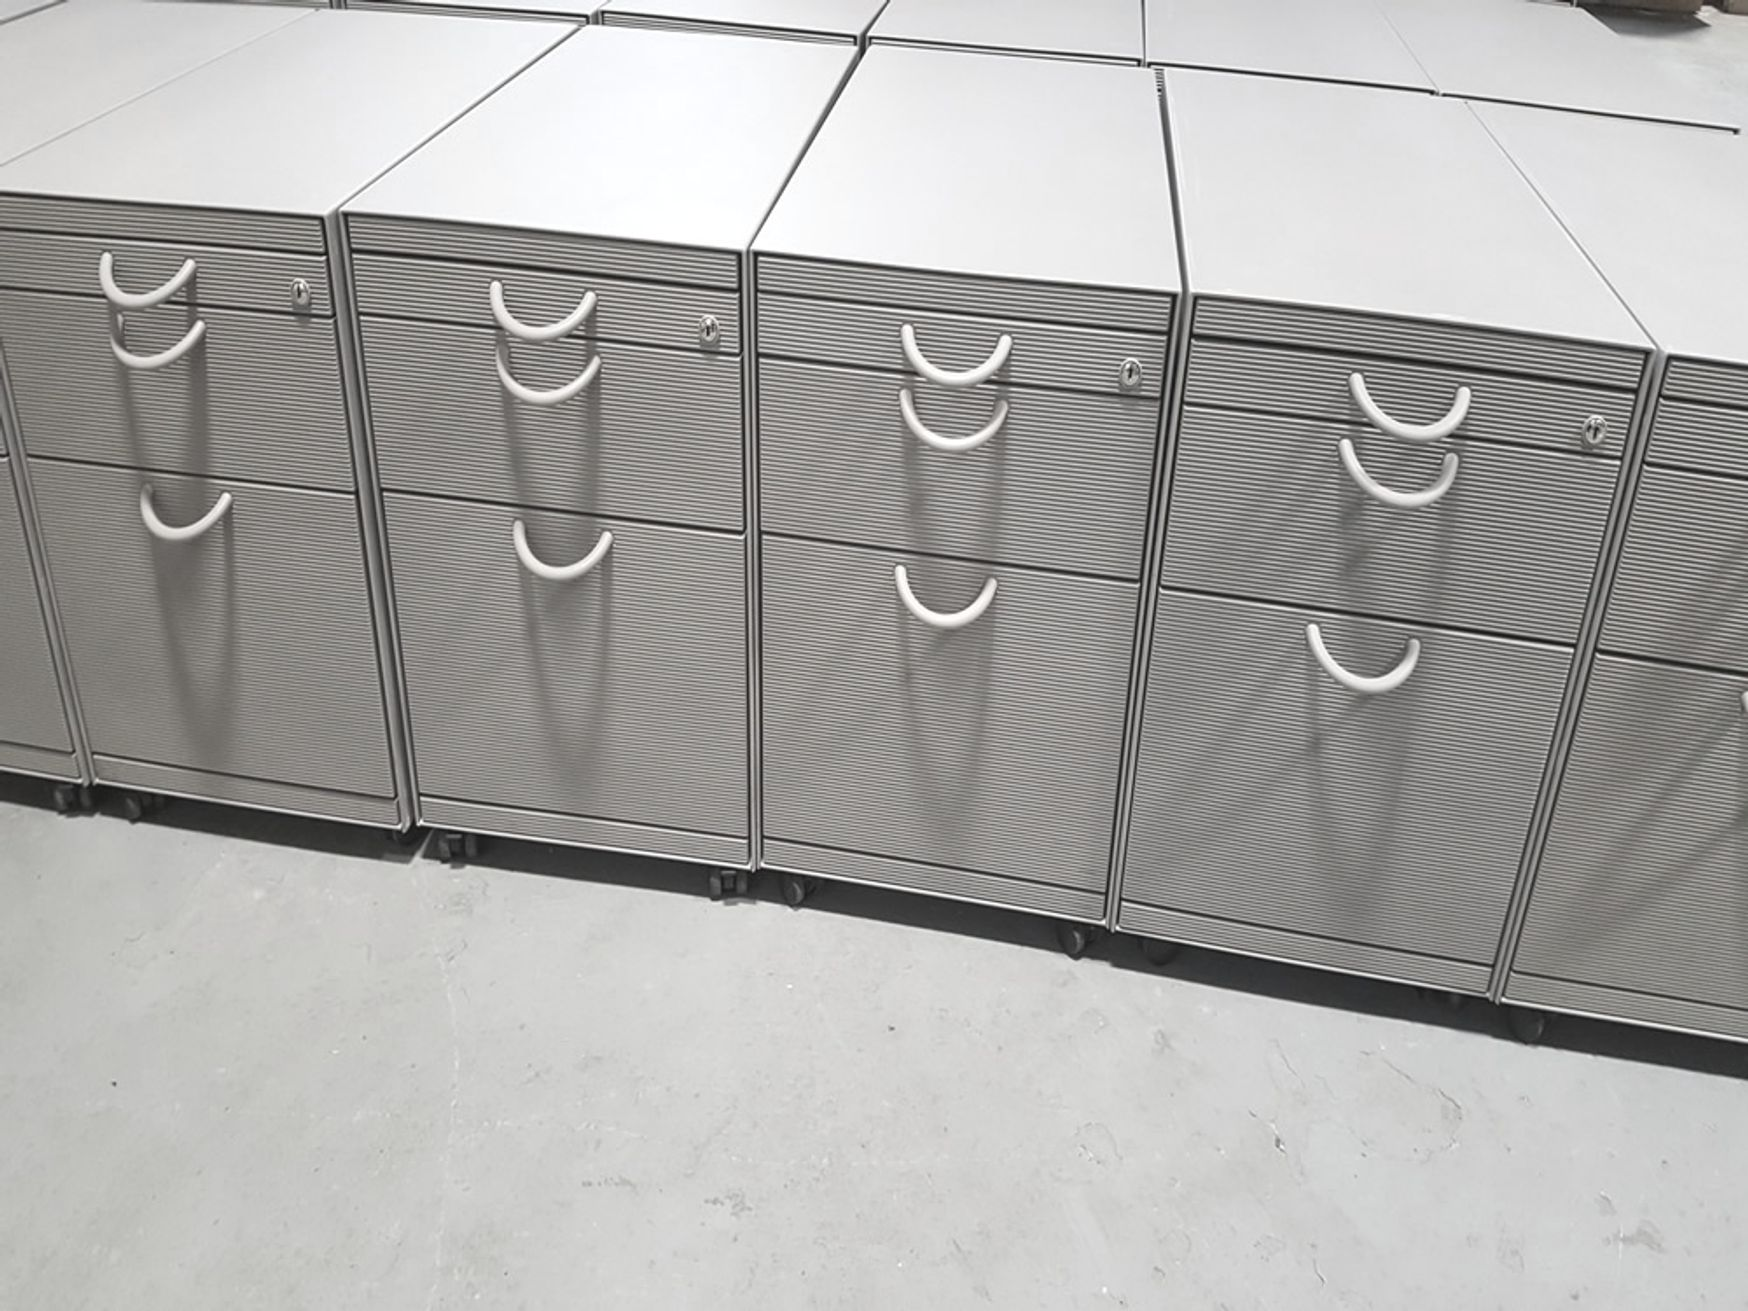 44 x Used Vitra 3-drawer 770mm deep pedestals with feature ribbed drawer fronts